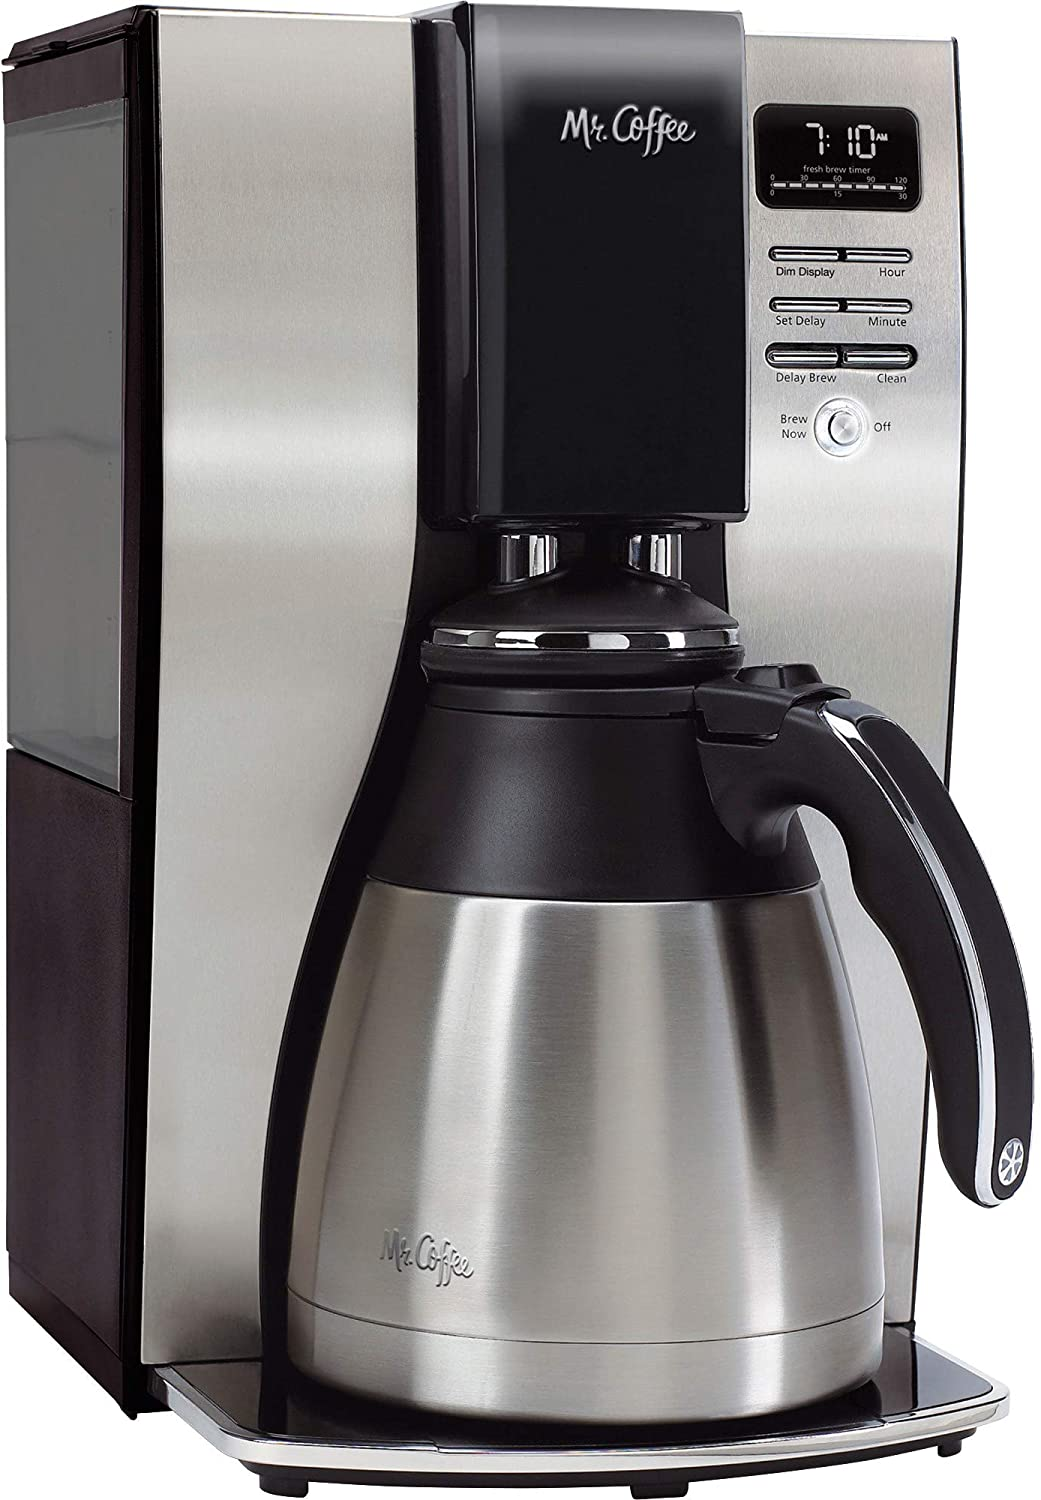 Mr. Coffee 10-Cup Plastic Free Coffee Maker